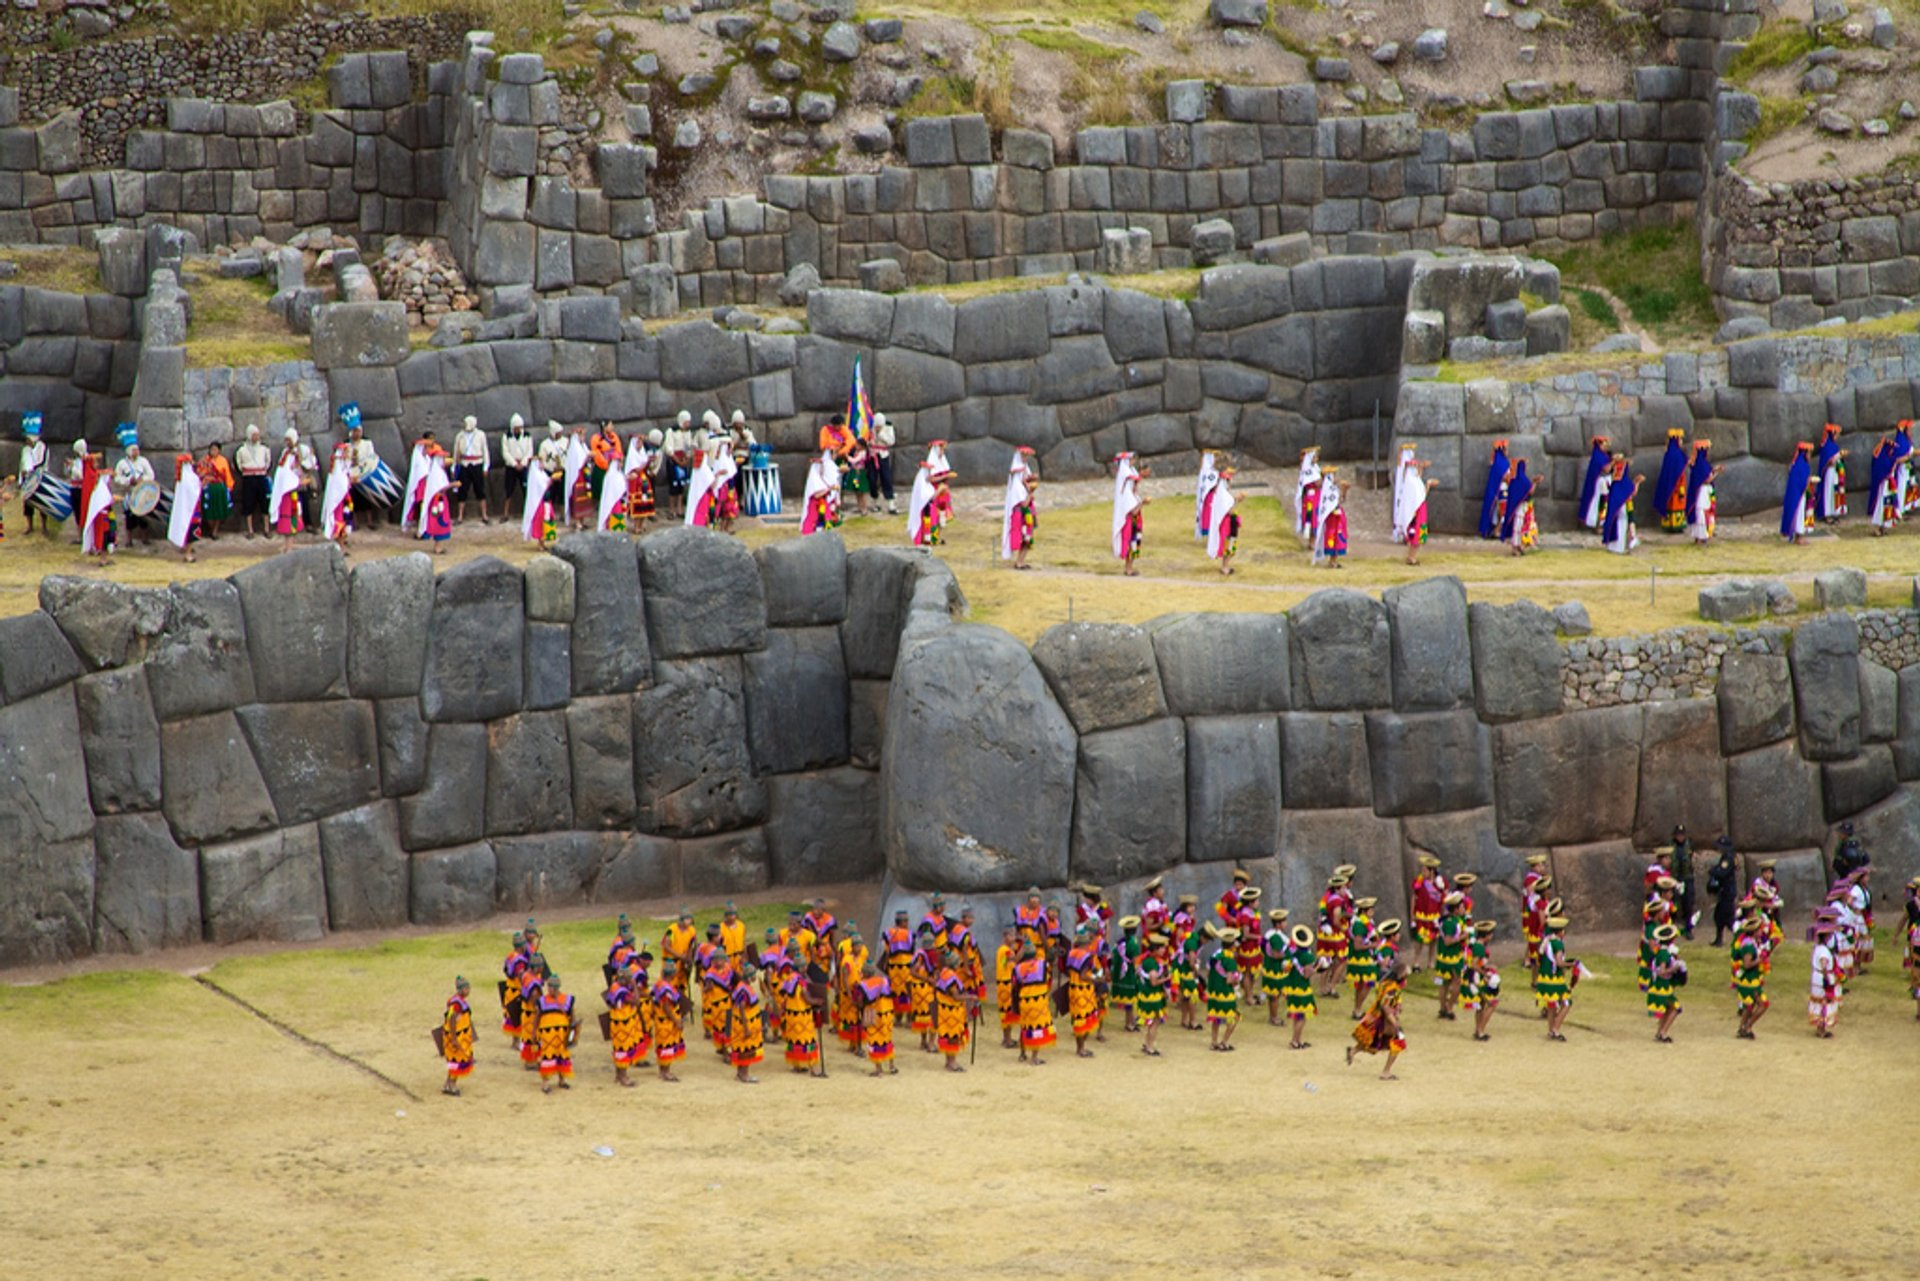 Best time for Inti Raymi in Machu Picchu and Cusco 2019